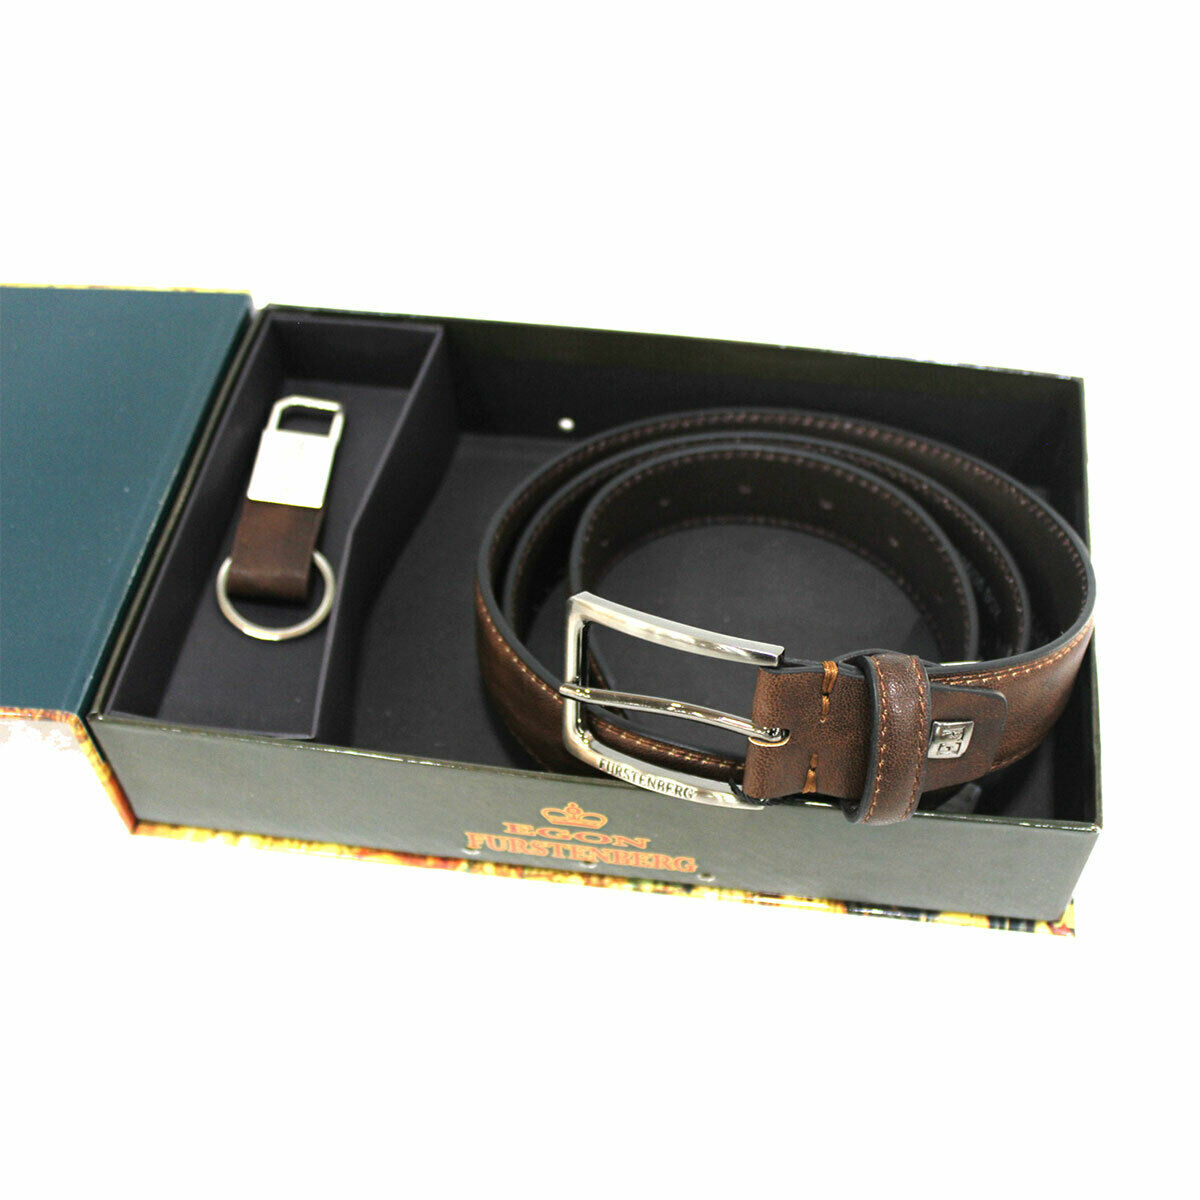 Men's set faux leather belt 35 mm high size 125 and keychain in box brown